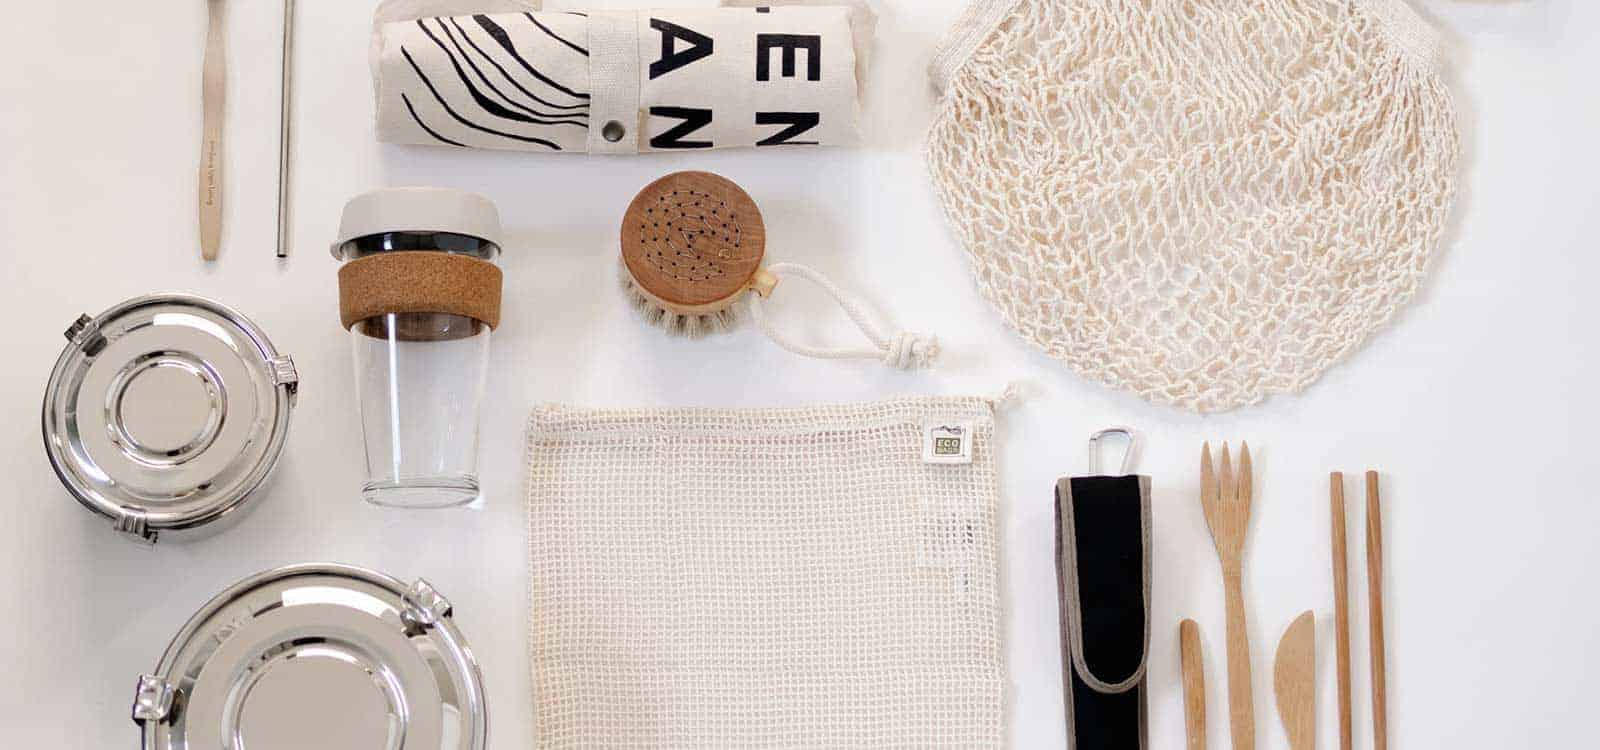 zero-waste-kit-header